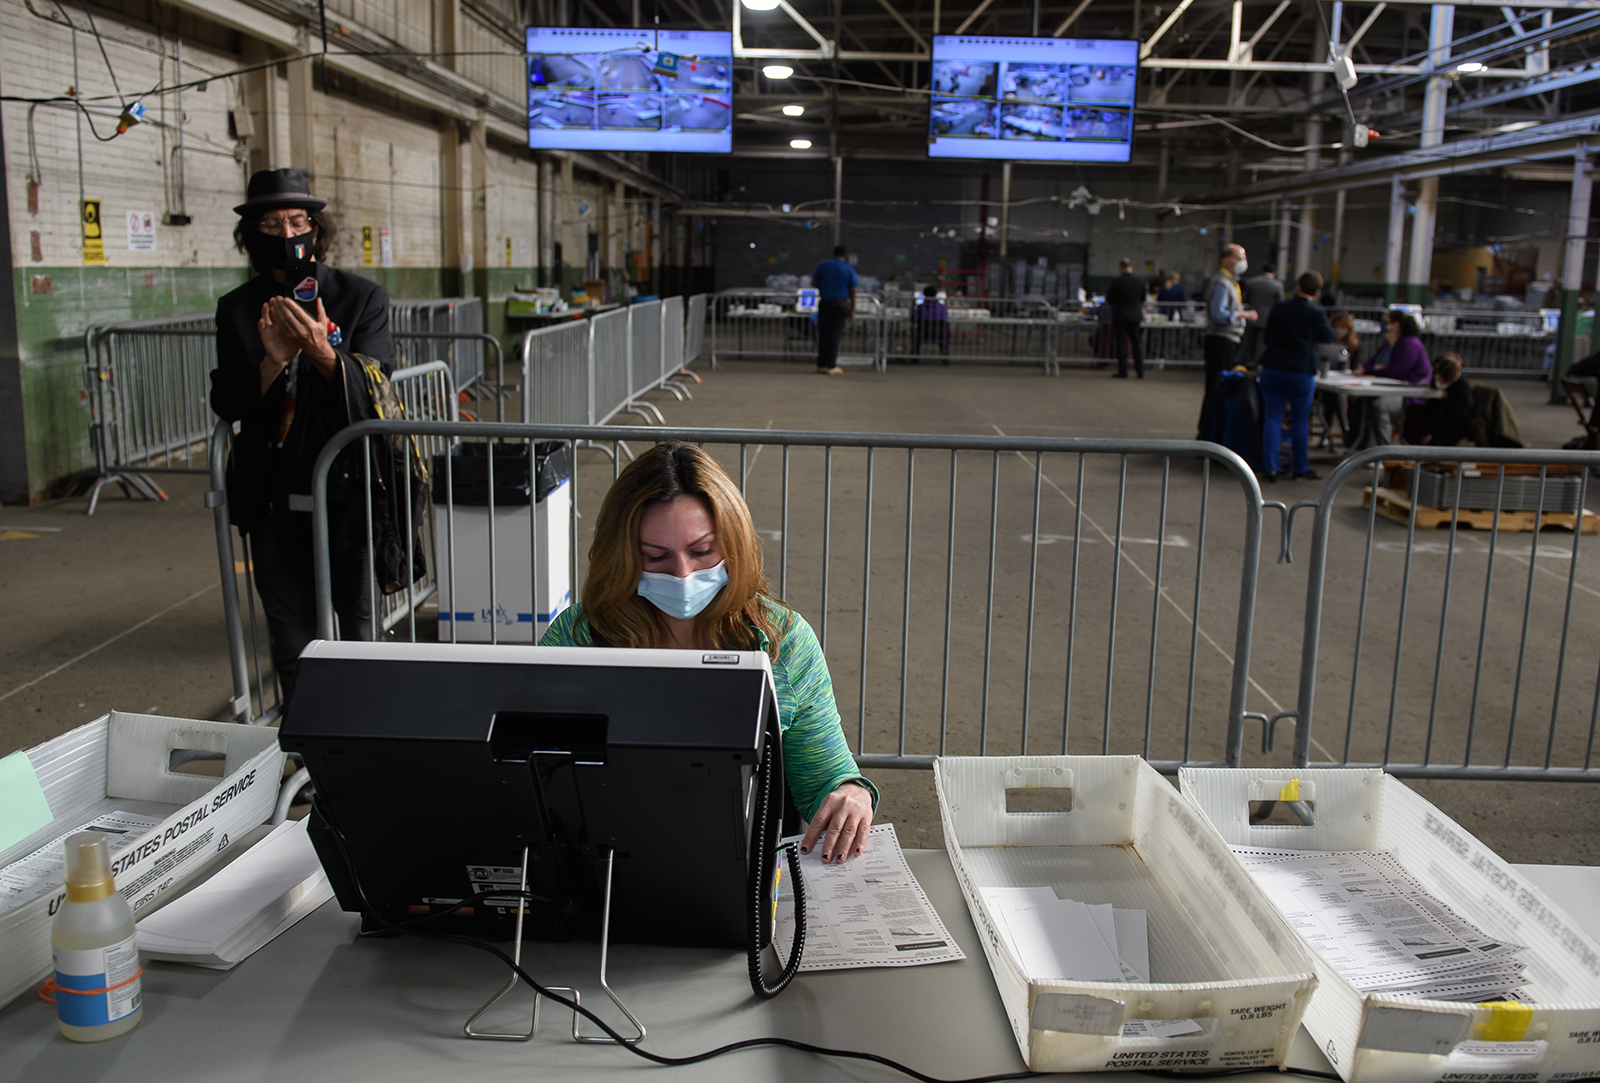 A Trump campaign poll watcher films the counting of ballots at the Allegheny County elections warehouse on November 6, in Pittsburgh, Pennsylvania.